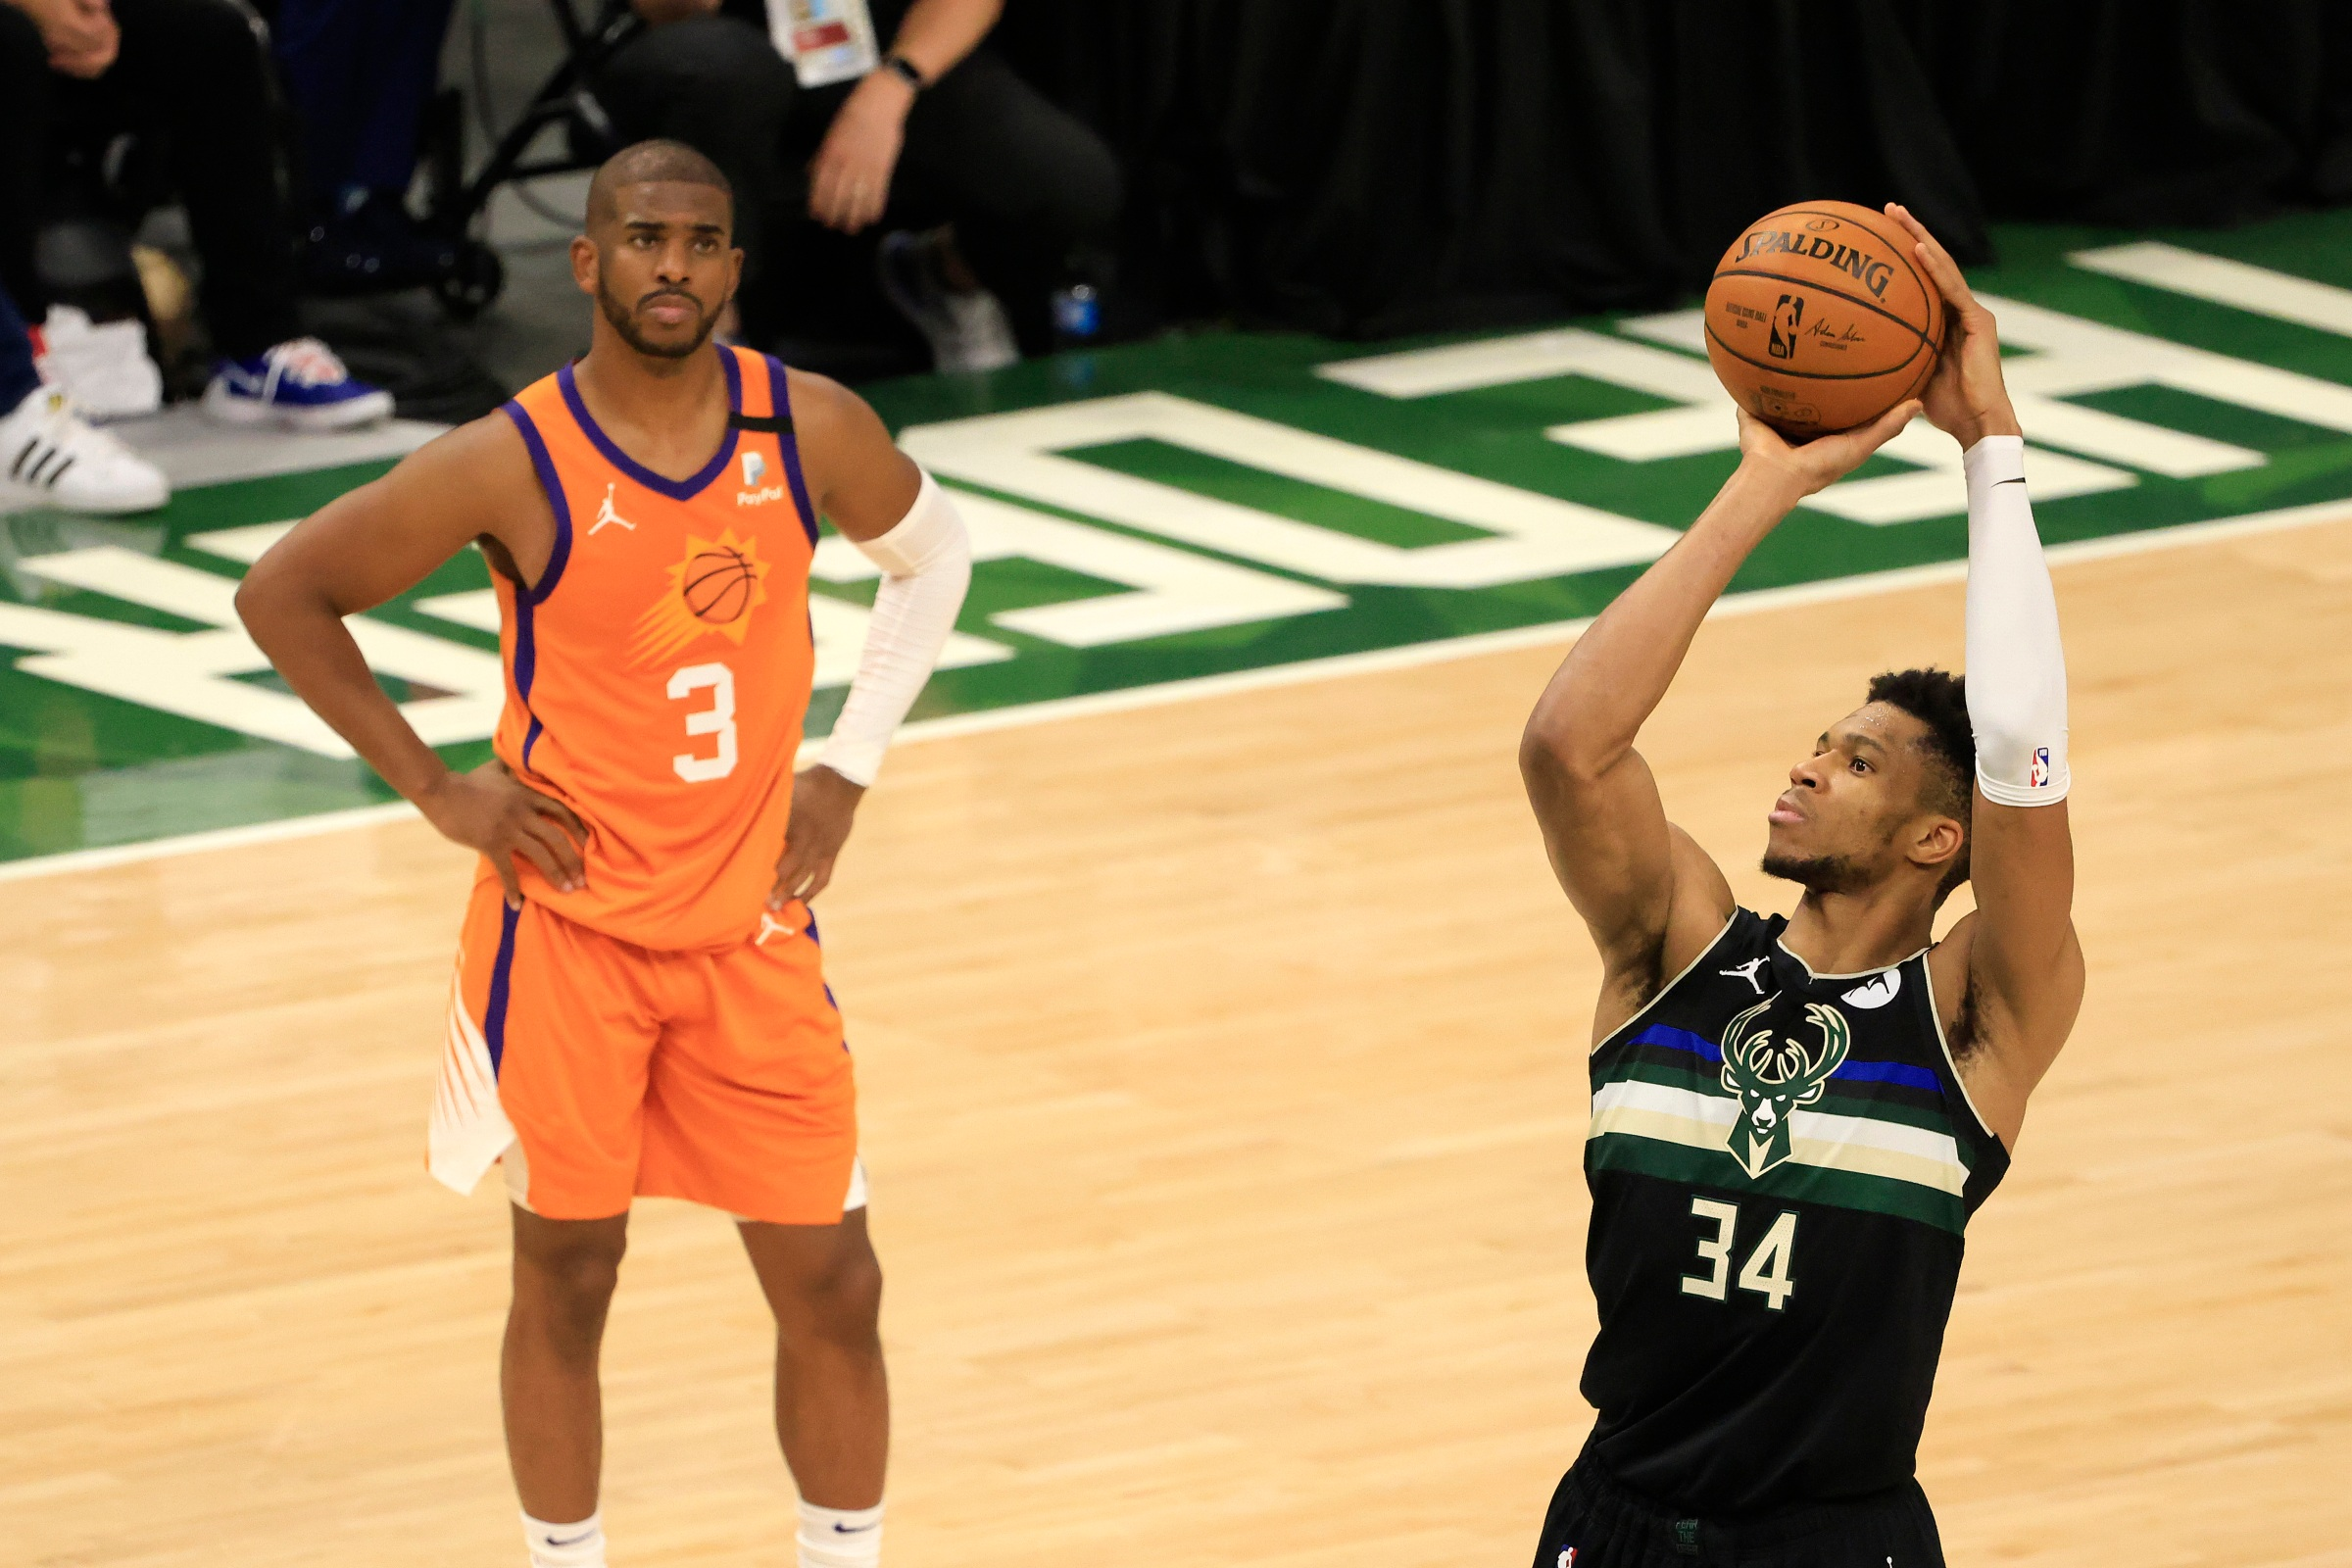 MILWAUKEE, WISCONSIN - JULY 20: Giannis Antetokounmpo #34 of the Milwaukee Bucks shoots a free throw as Chris Paul #3 of the Phoenix Suns watches during the second half in Game Six of the NBA Finals at Fiserv Forum on July 20, 2021 in Milwaukee, Wisconsin. NOTE TO USER: User expressly acknowledges and agrees that, by downloading and or using this photograph, User is consenting to the terms and conditions of the Getty Images License Agreement.